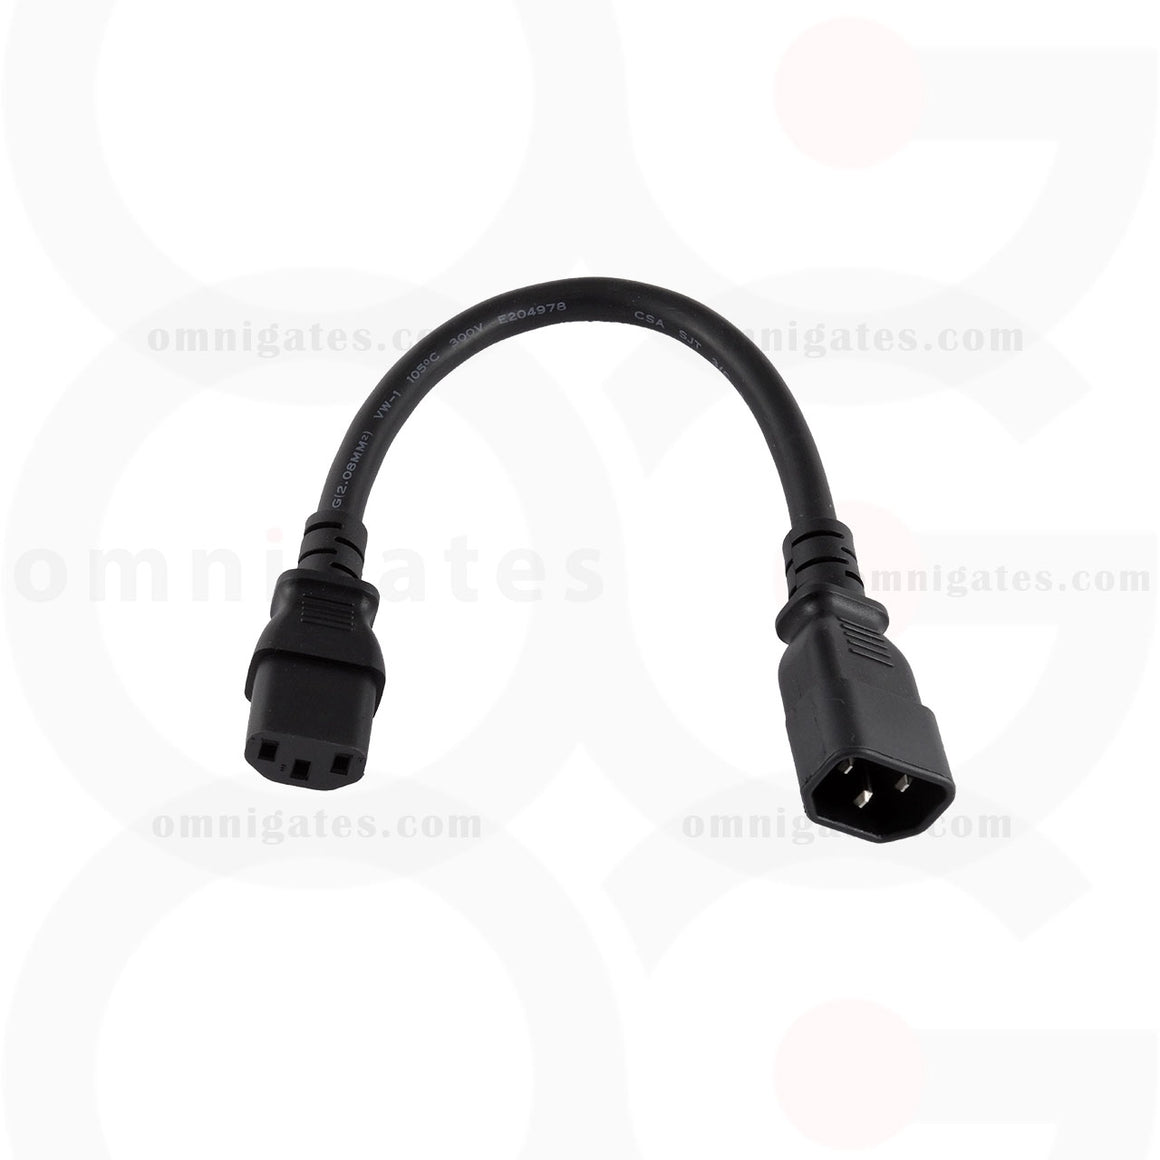 black 1 foot Power Cord Extension, PC/Monitor, 14AWG, 15A 250V, C13/C14 Connector Cable